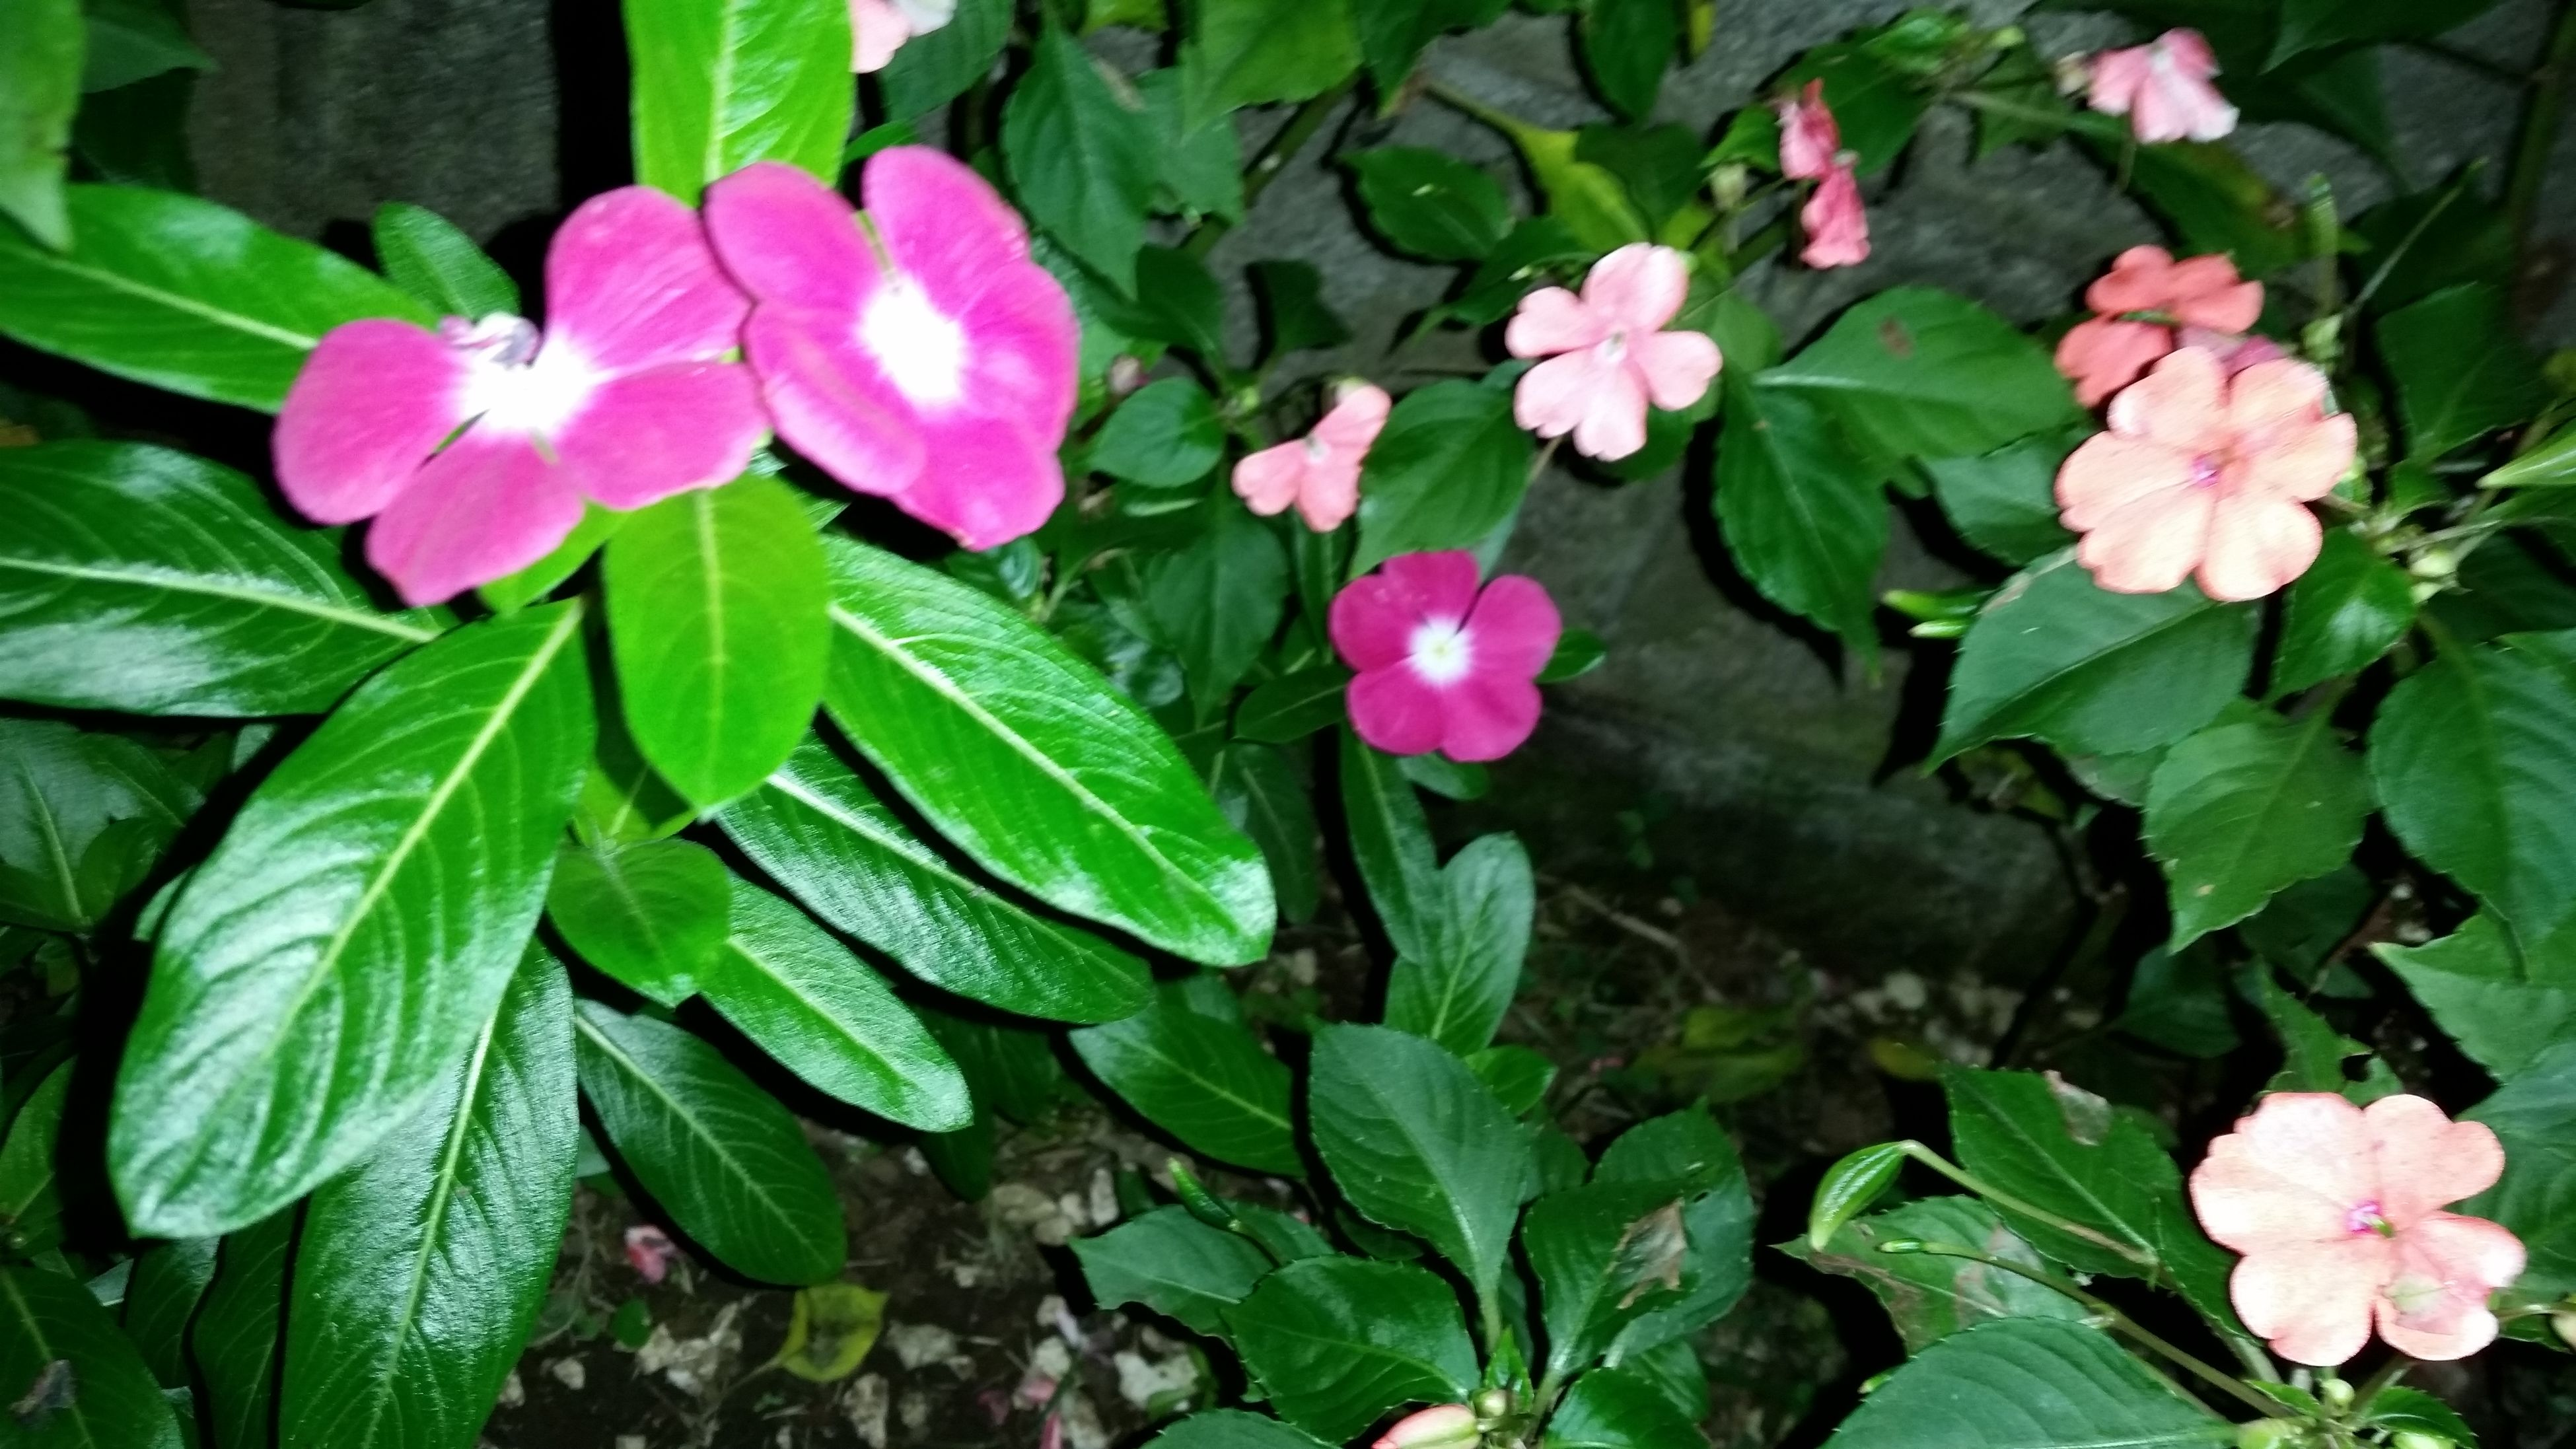 leaf, flower, growth, plant, nature, pink color, green color, petal, beauty in nature, freshness, fragility, flower head, blooming, outdoors, no people, periwinkle, day, close-up